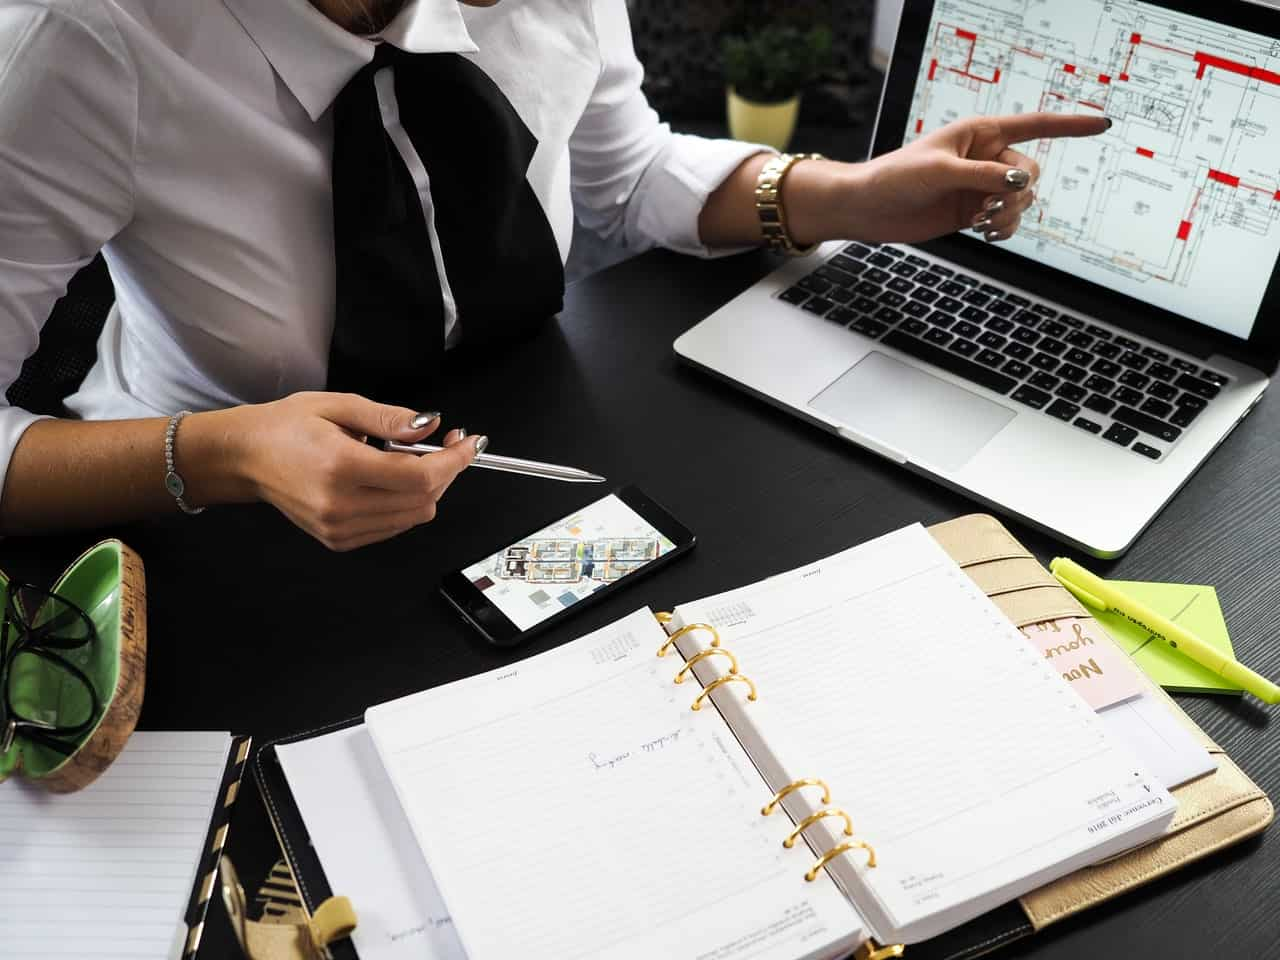 Smart project planning with a project management tool